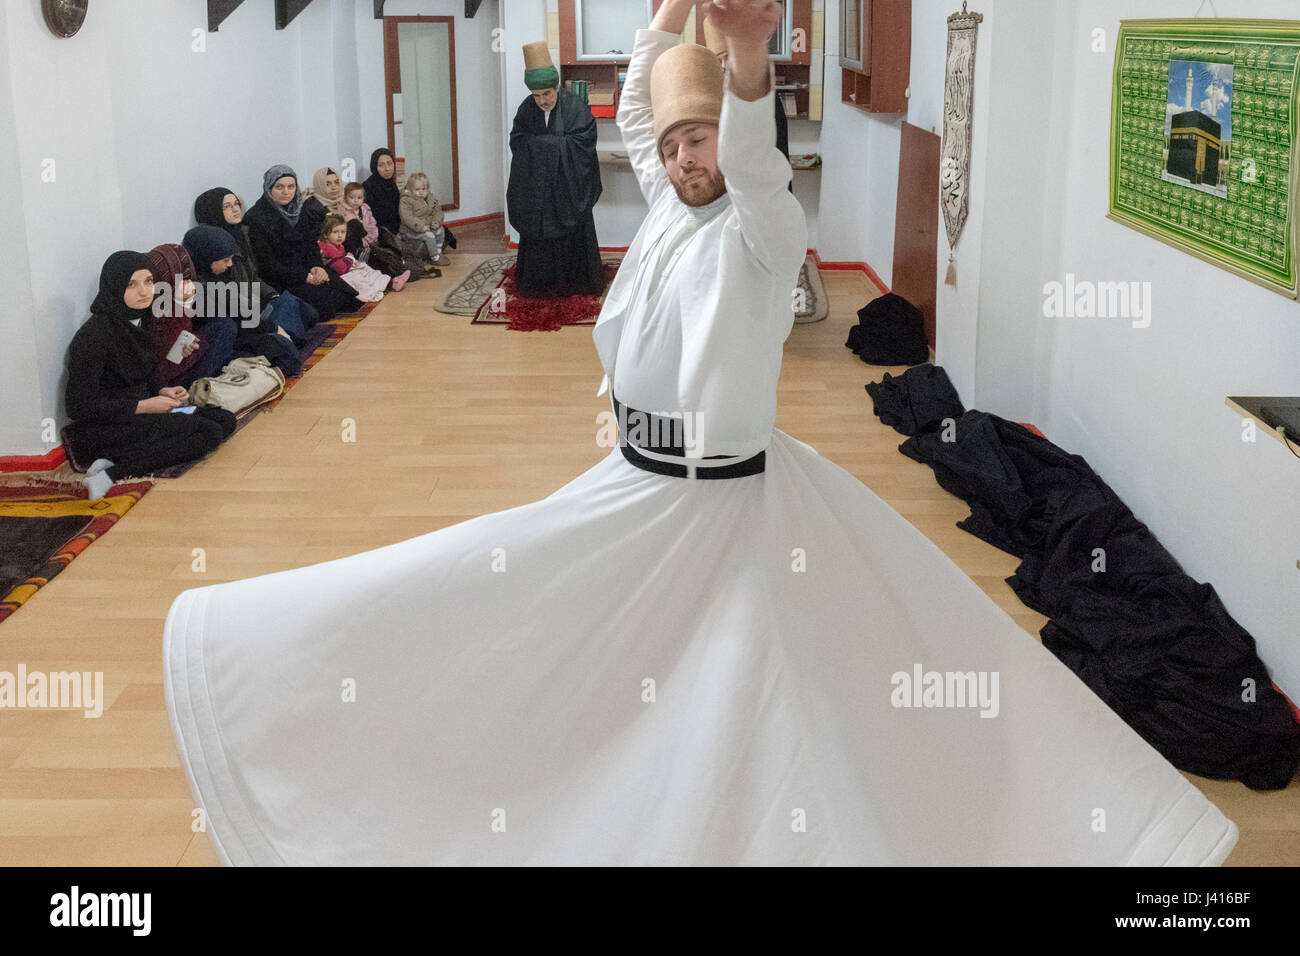 Dervish Whirling at Yaqup Baba of Fatih, Istanbul, TURKEY -  18/12/2016. In Istanbul's neighbourhood of Fatih, Yakup - Stock Image